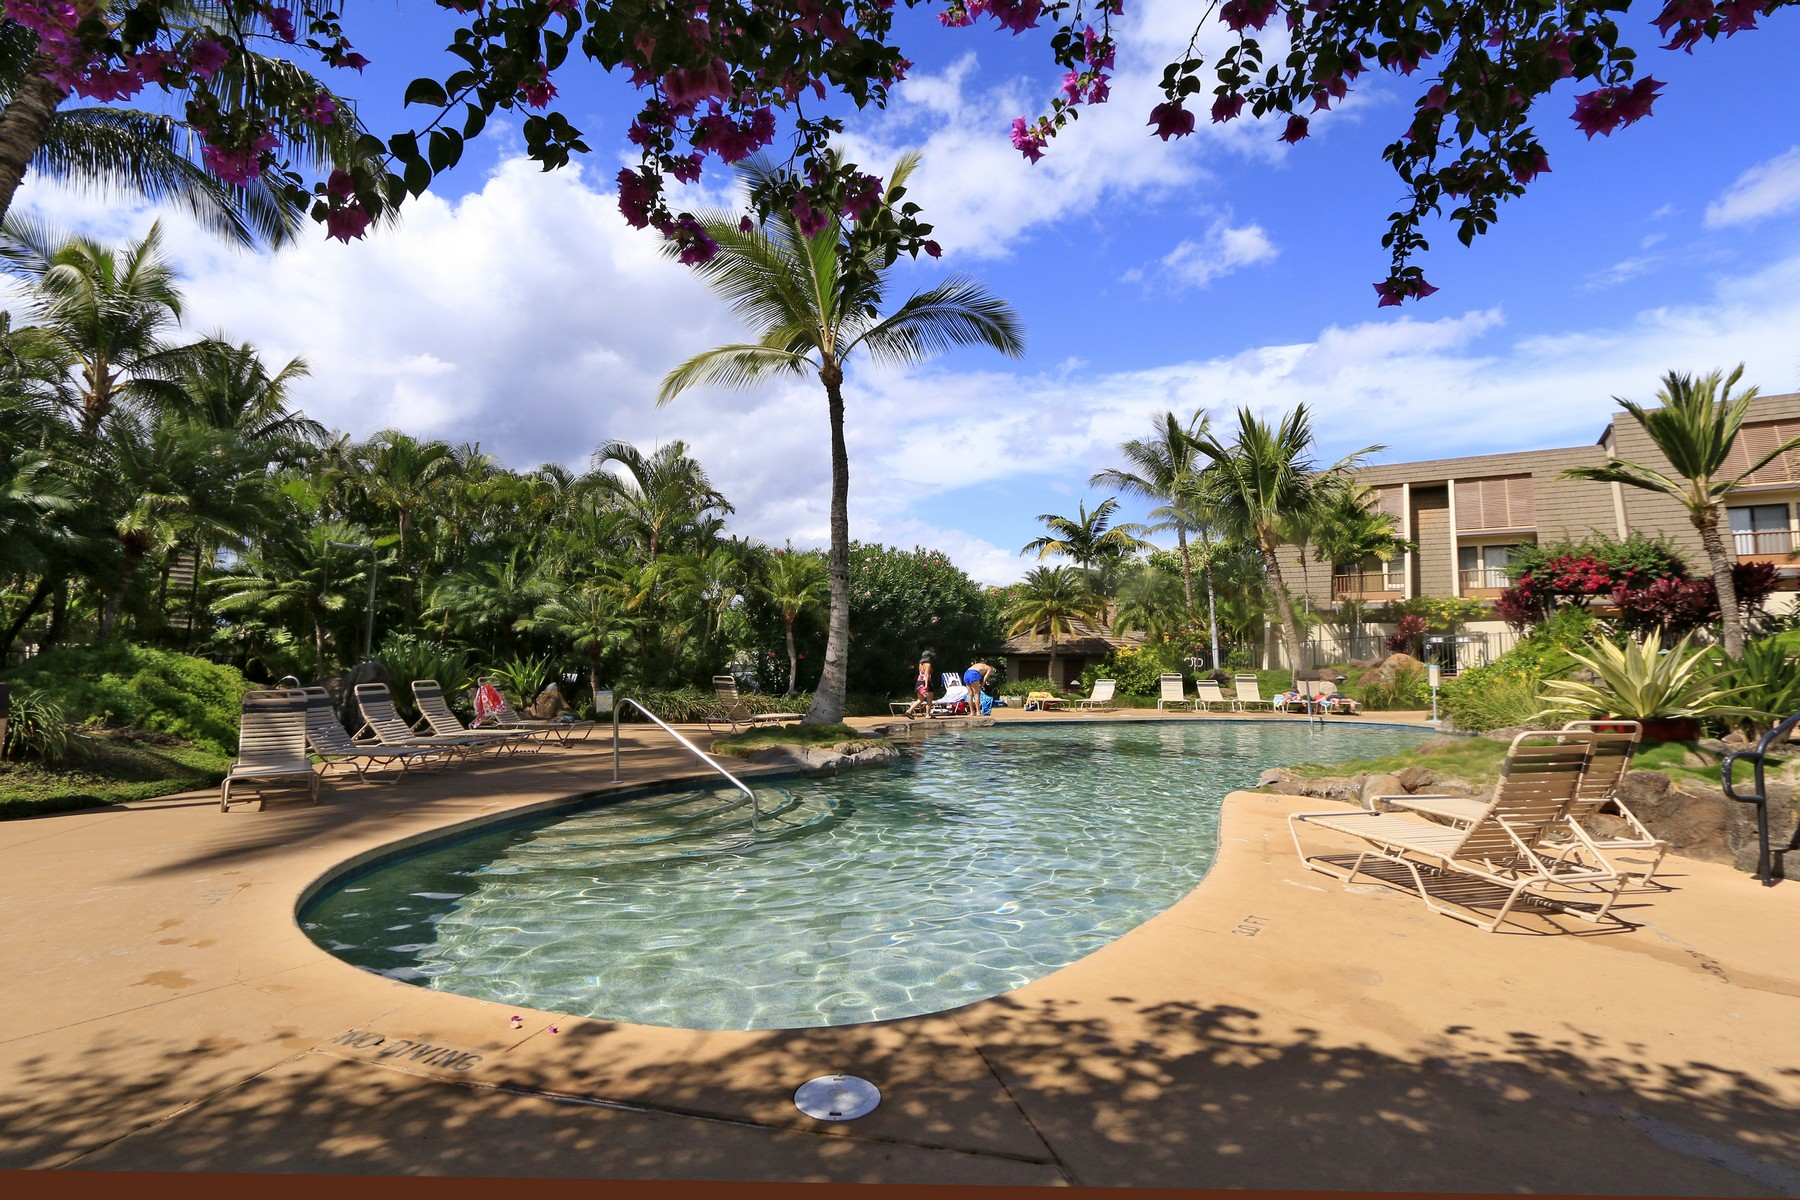 Condominium for Sale at Private location in coveted complex & competitively priced 2777 South Kihei Road, Maui Kamaole D112 Kihei, Hawaii 96753 United States